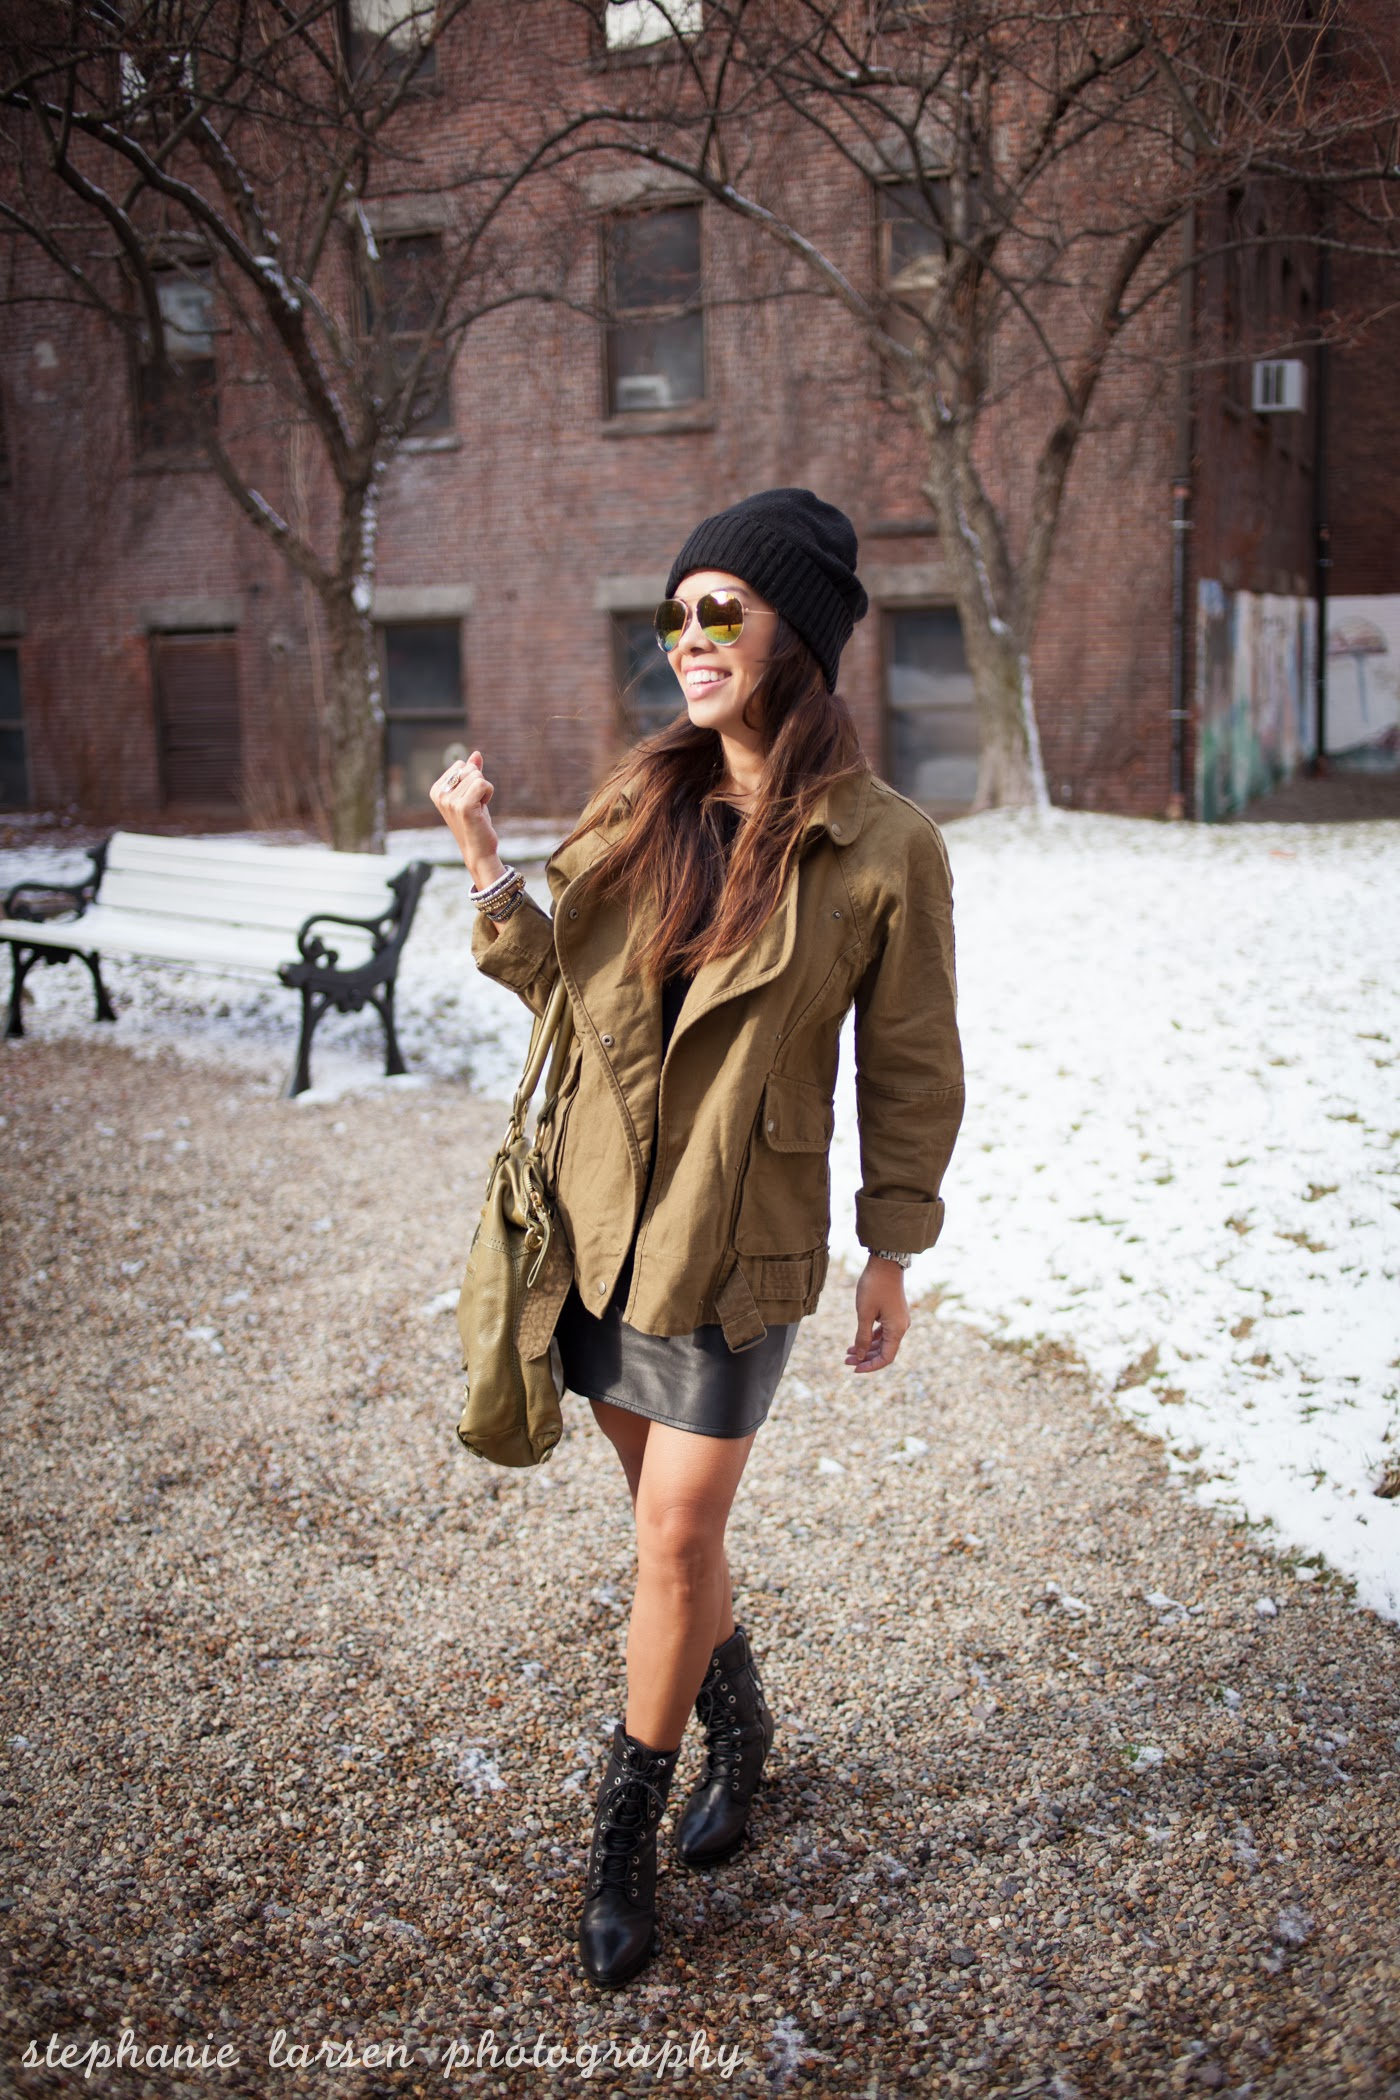 The Wearwithal Moto Chic Rachel Rosales